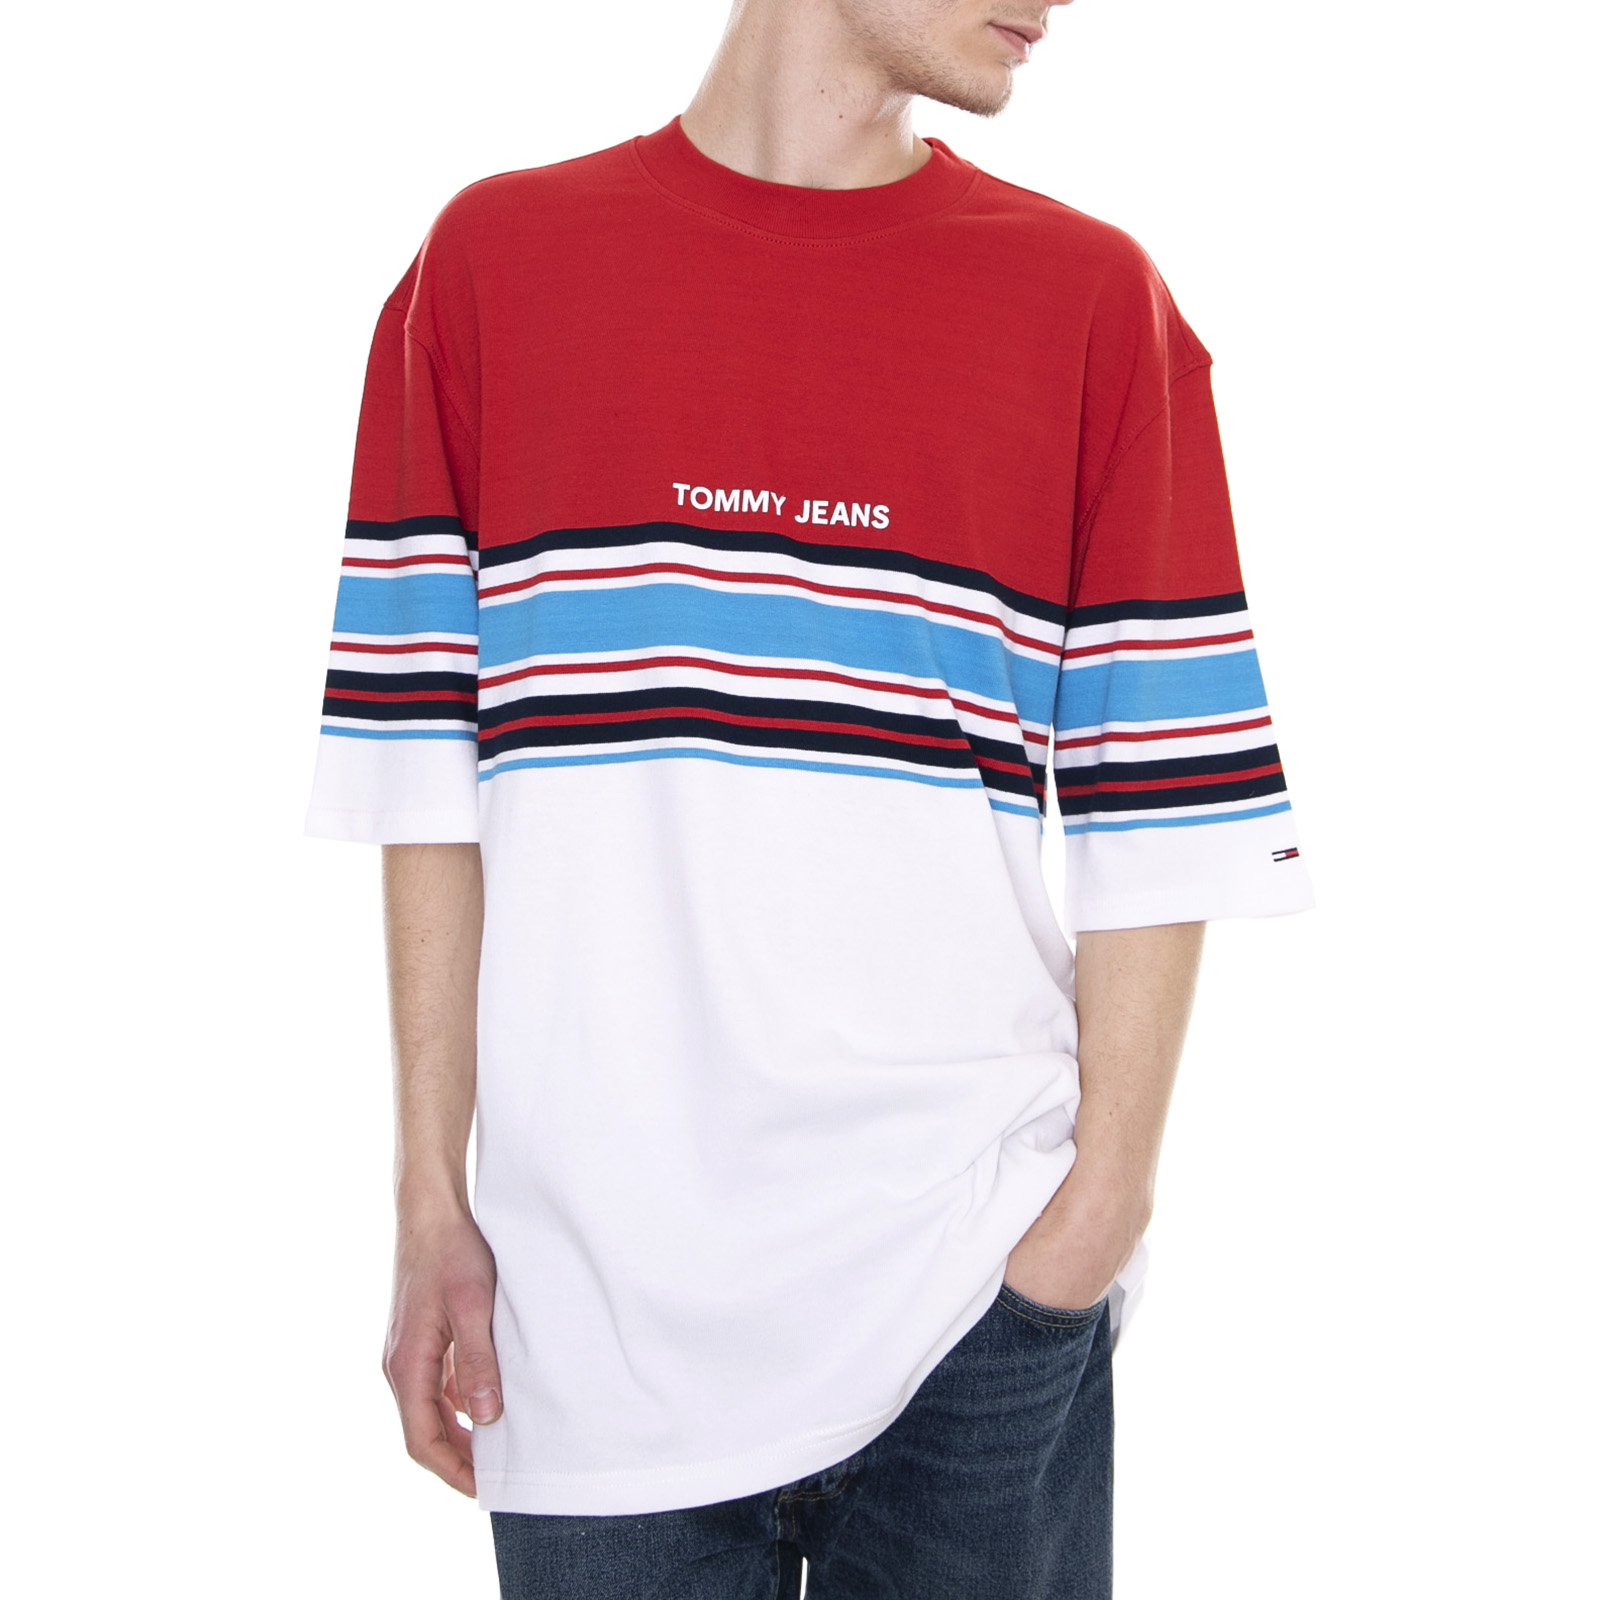 wholesale dealer 2a622 cc7d0 Dettagli su Tommy Hilfiger Placed Stripe Tee Samba/Multicolor Maglietta  Oversize Uomo